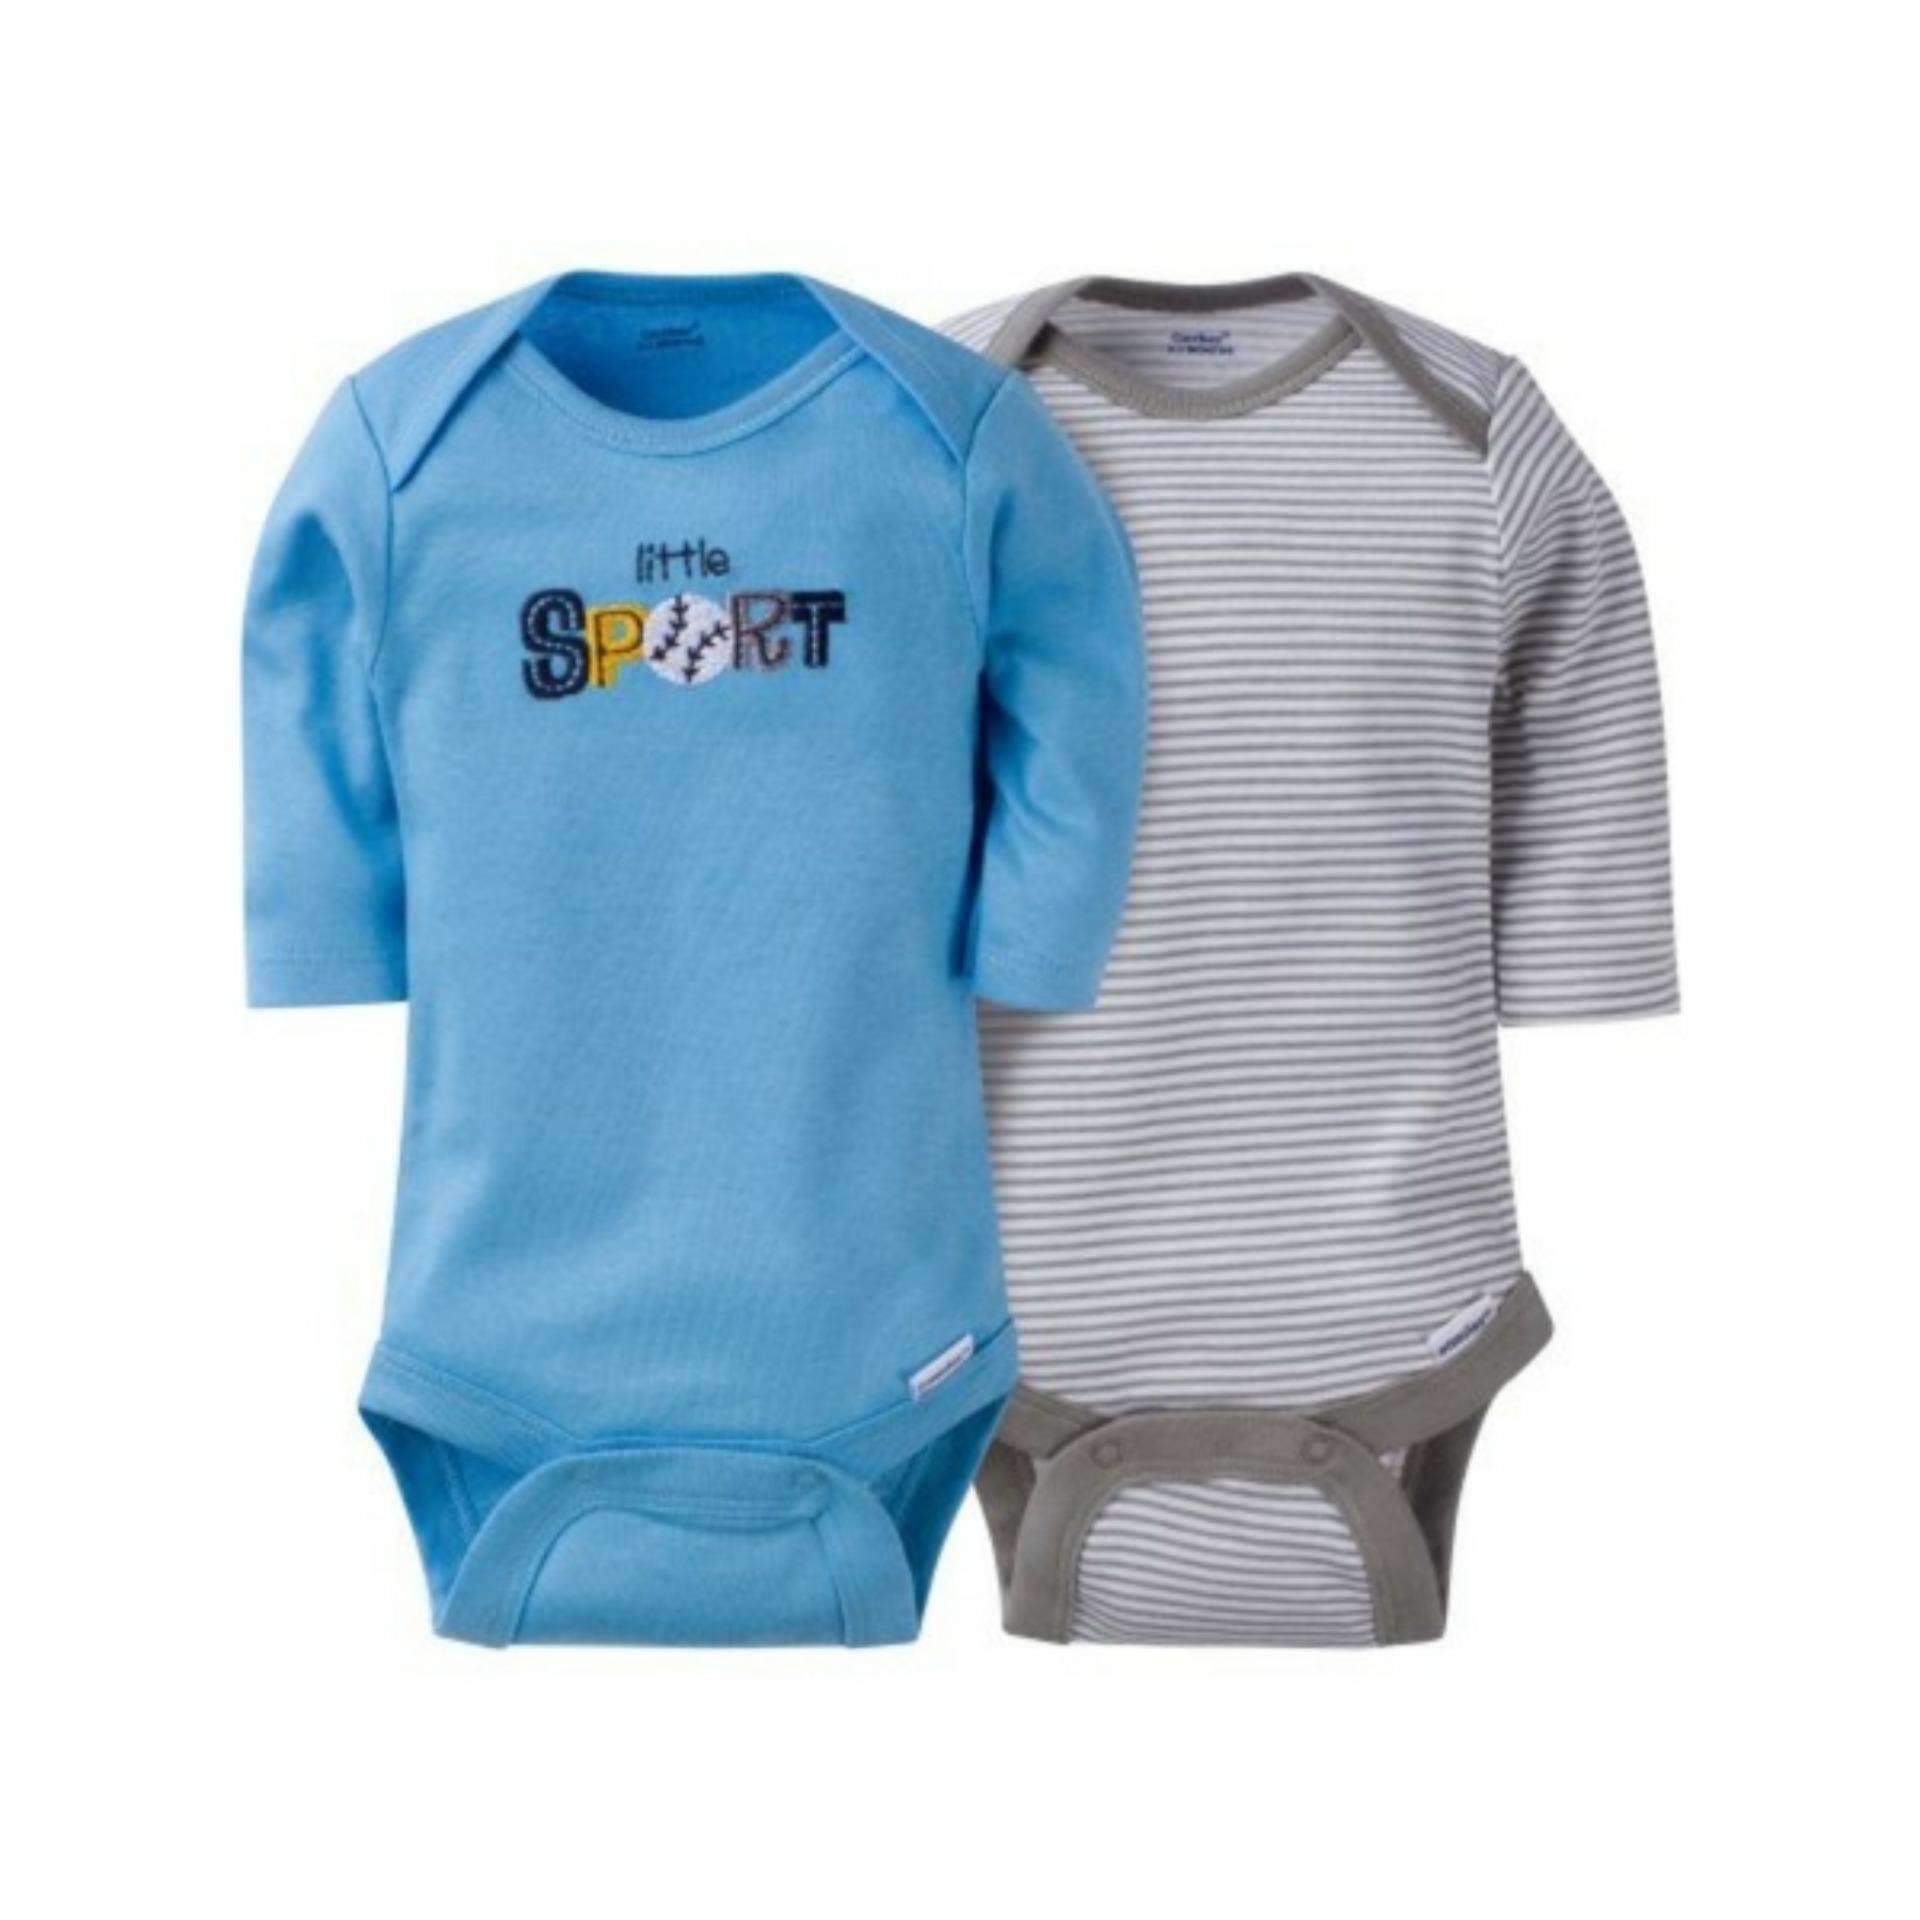 558e1cfc5 Latest Gerber Body Suits Products | Enjoy Huge Discounts | Lazada SG